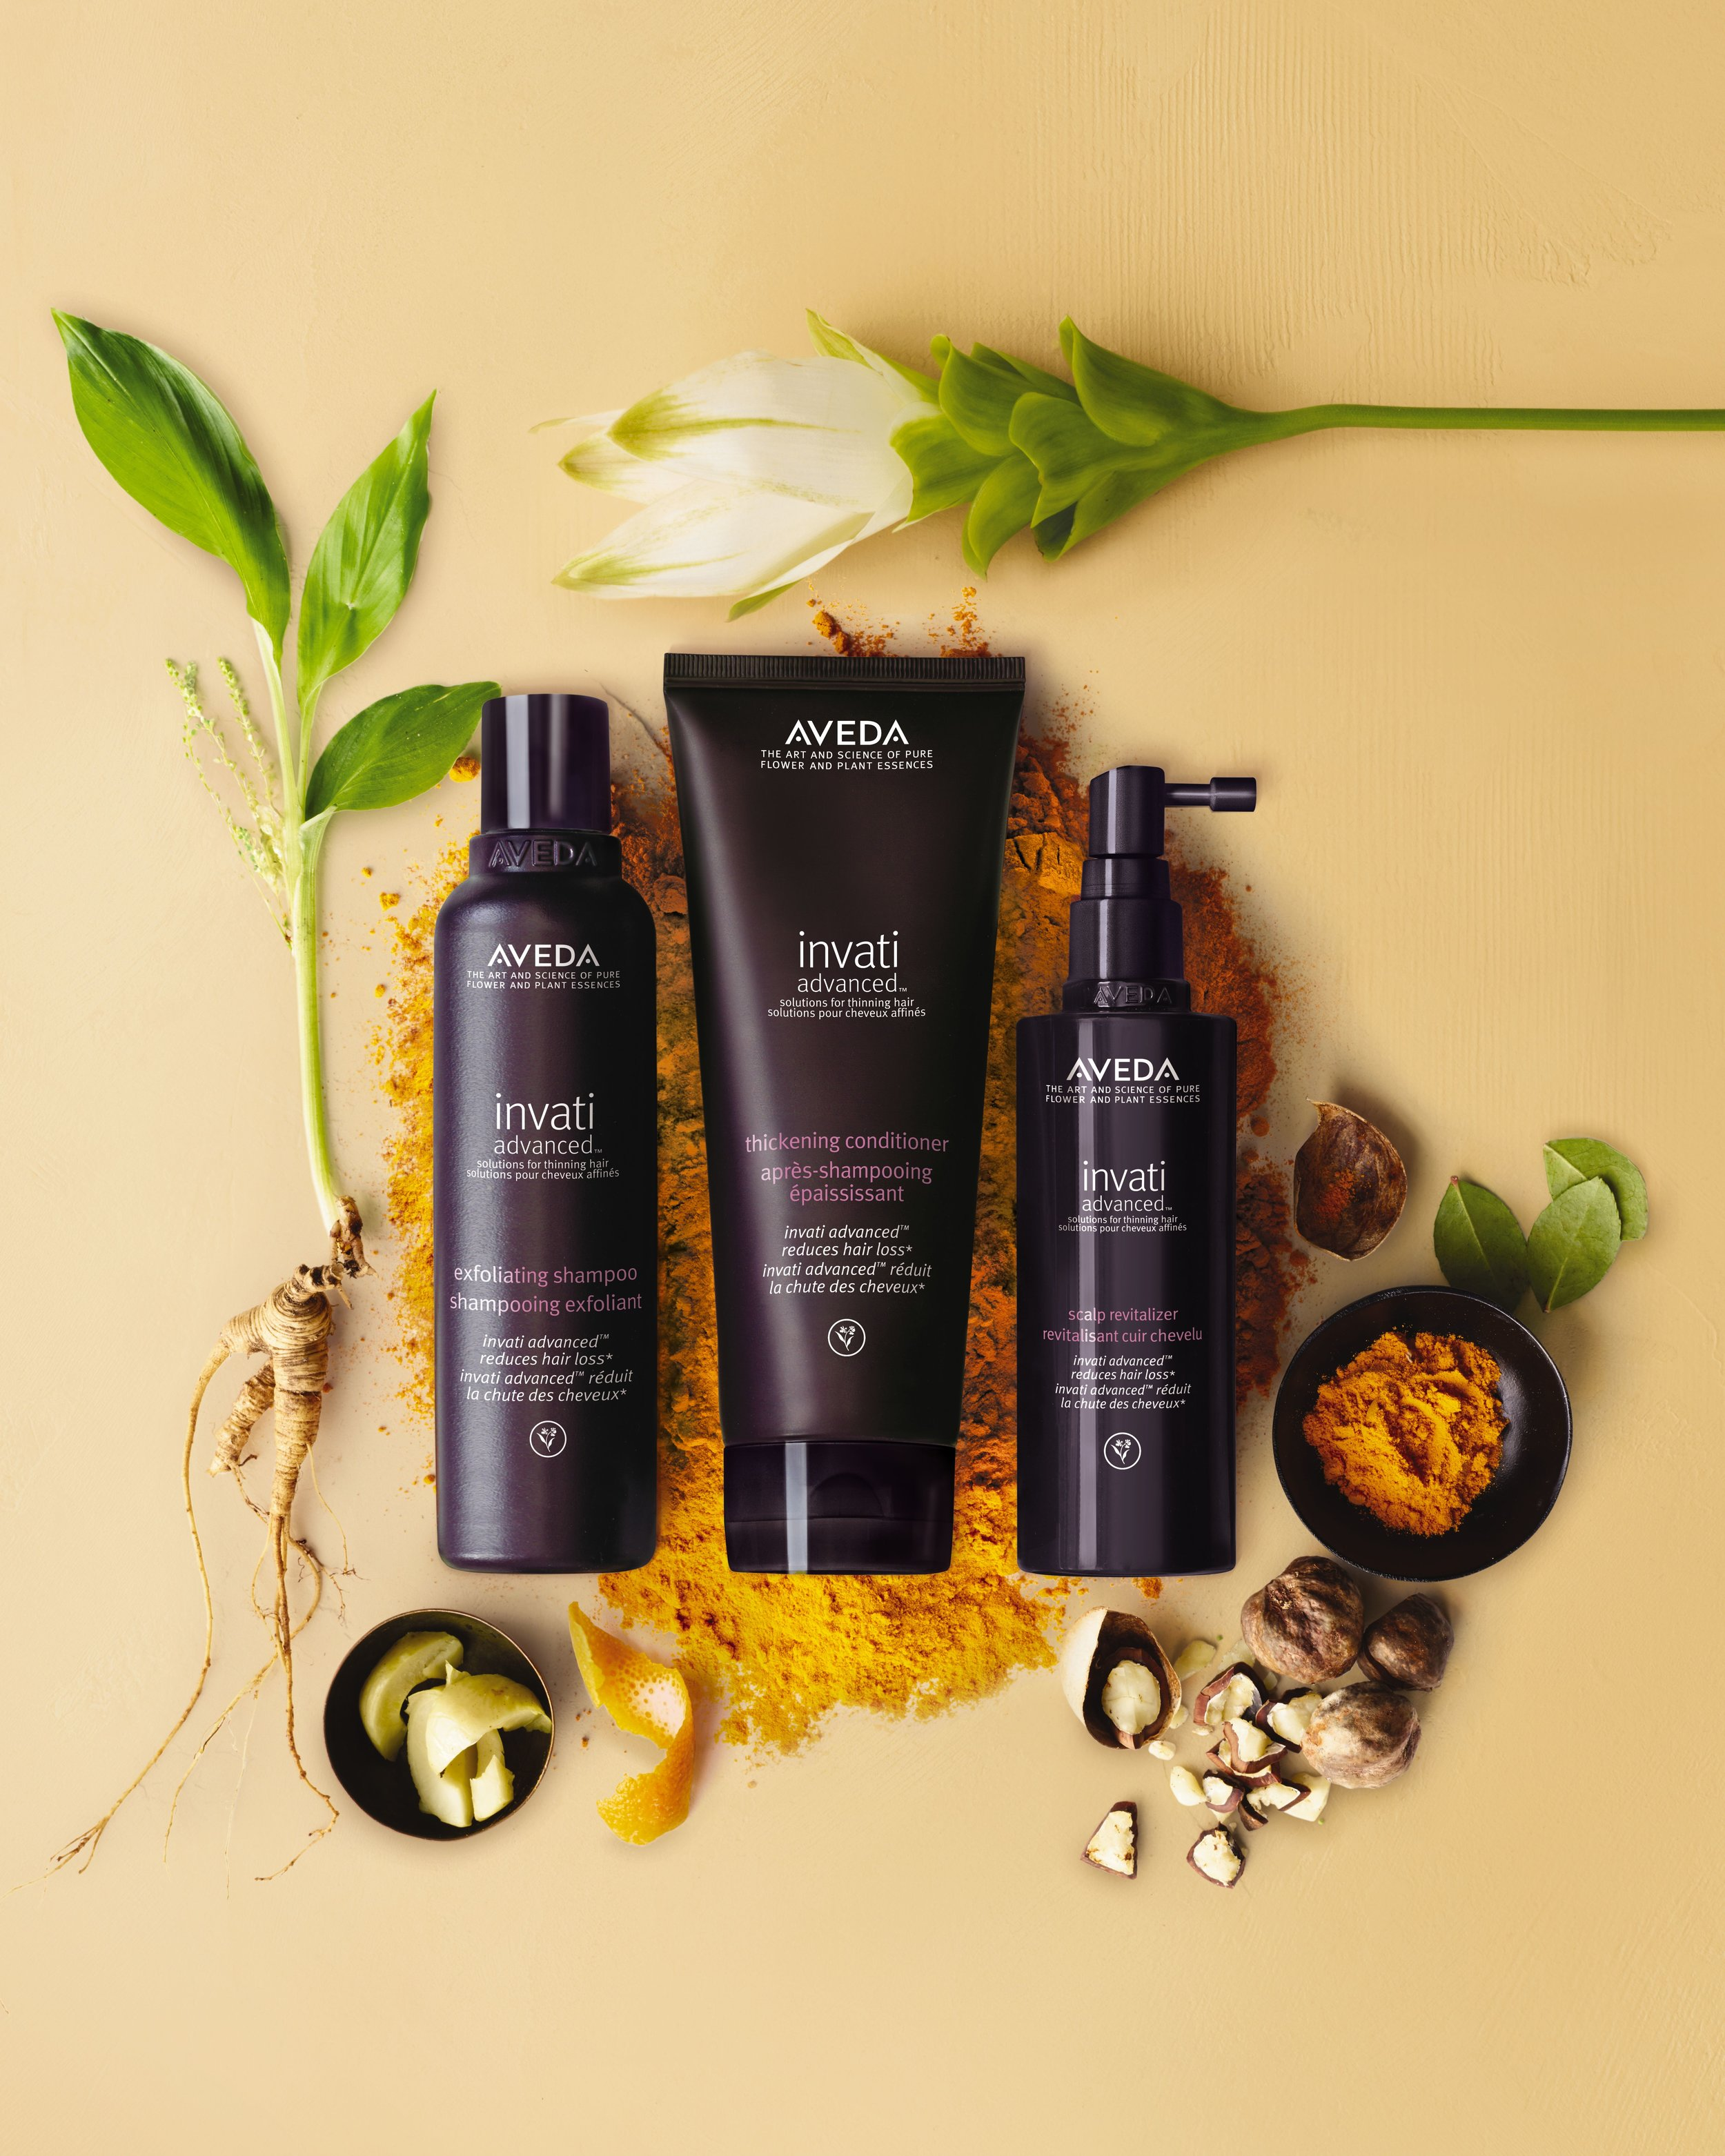 SHOP - Take value in your skin and hair care both in house and at home. Select from a wide array of hair and skin care products A Roland has to offer. We invite you to join us and receive complimentary personalized consultation on product selection, application and other helpful knowledge by one of our certified specialist.